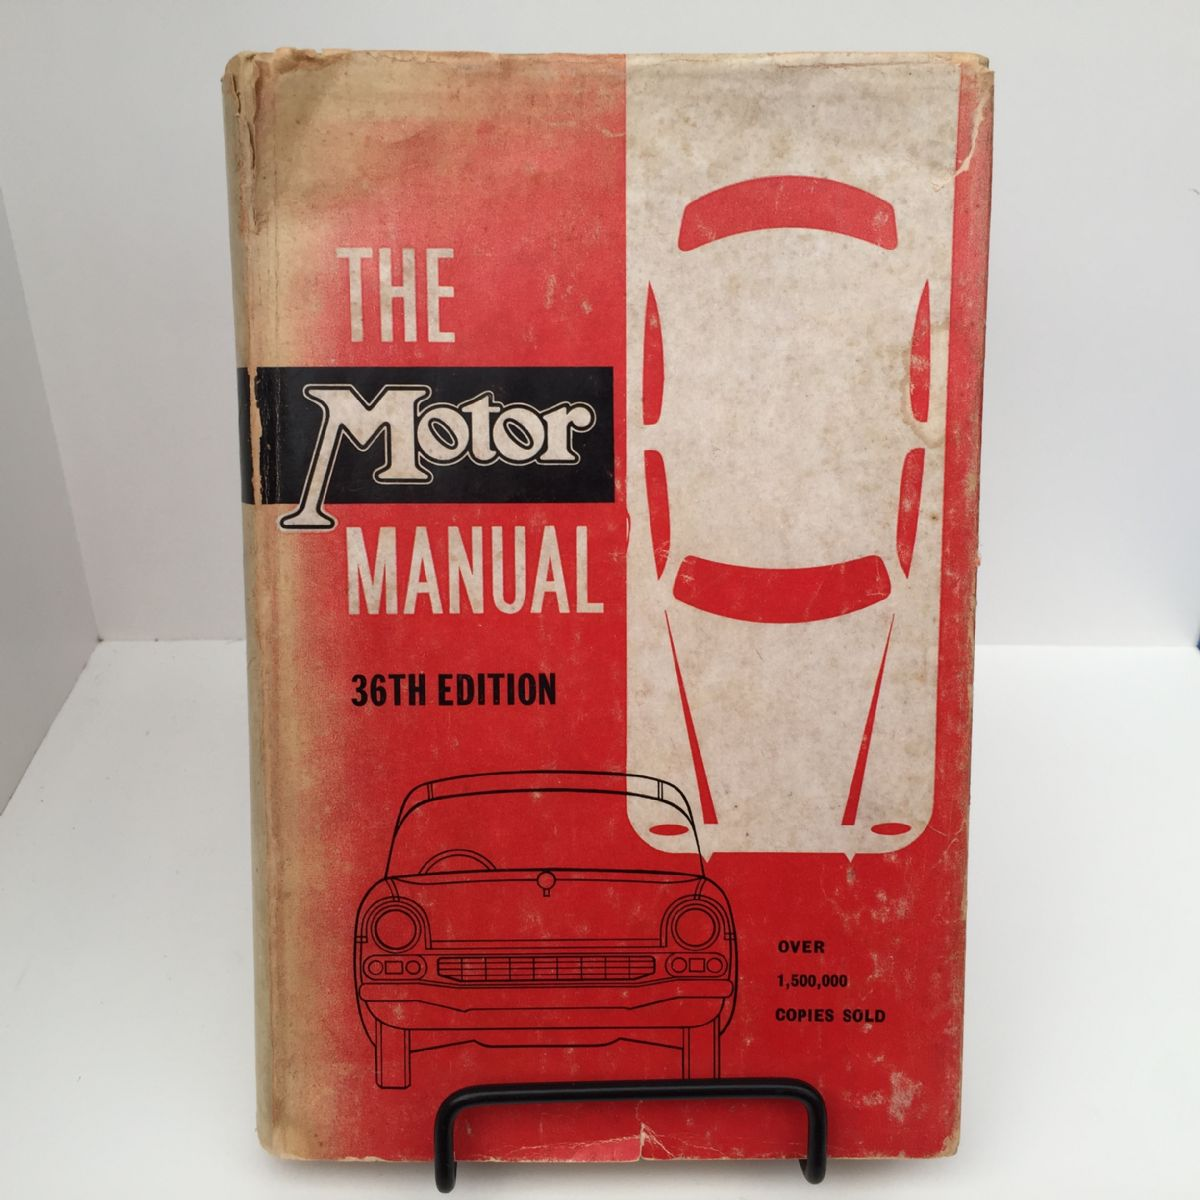 The Motor Manual 36rd edition